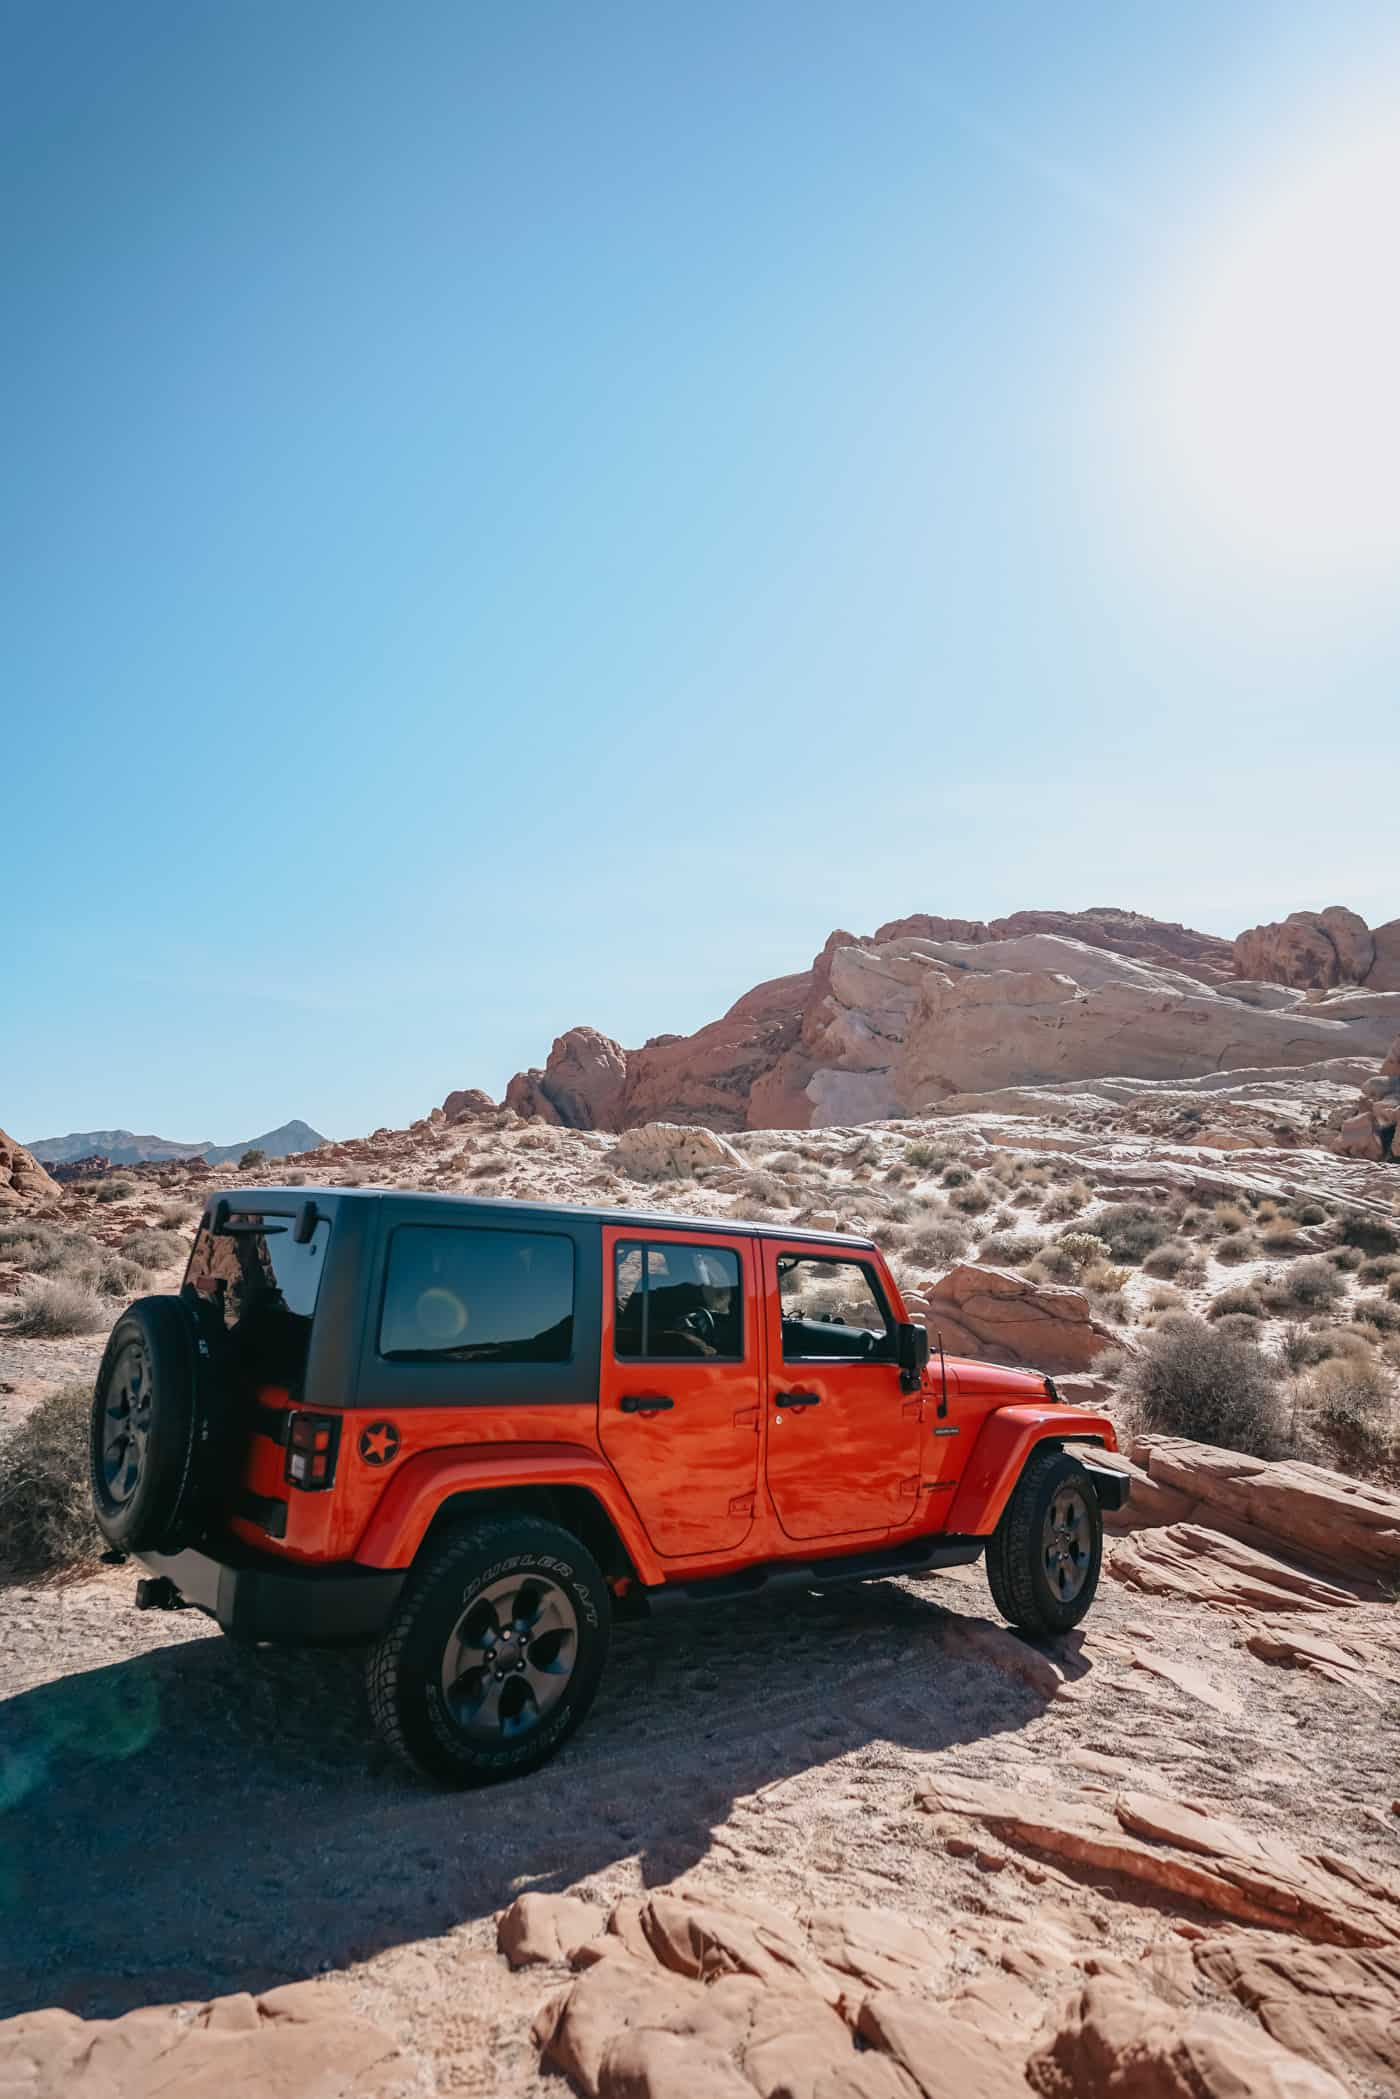 A red Jeep Wrangler at Arches National Park.